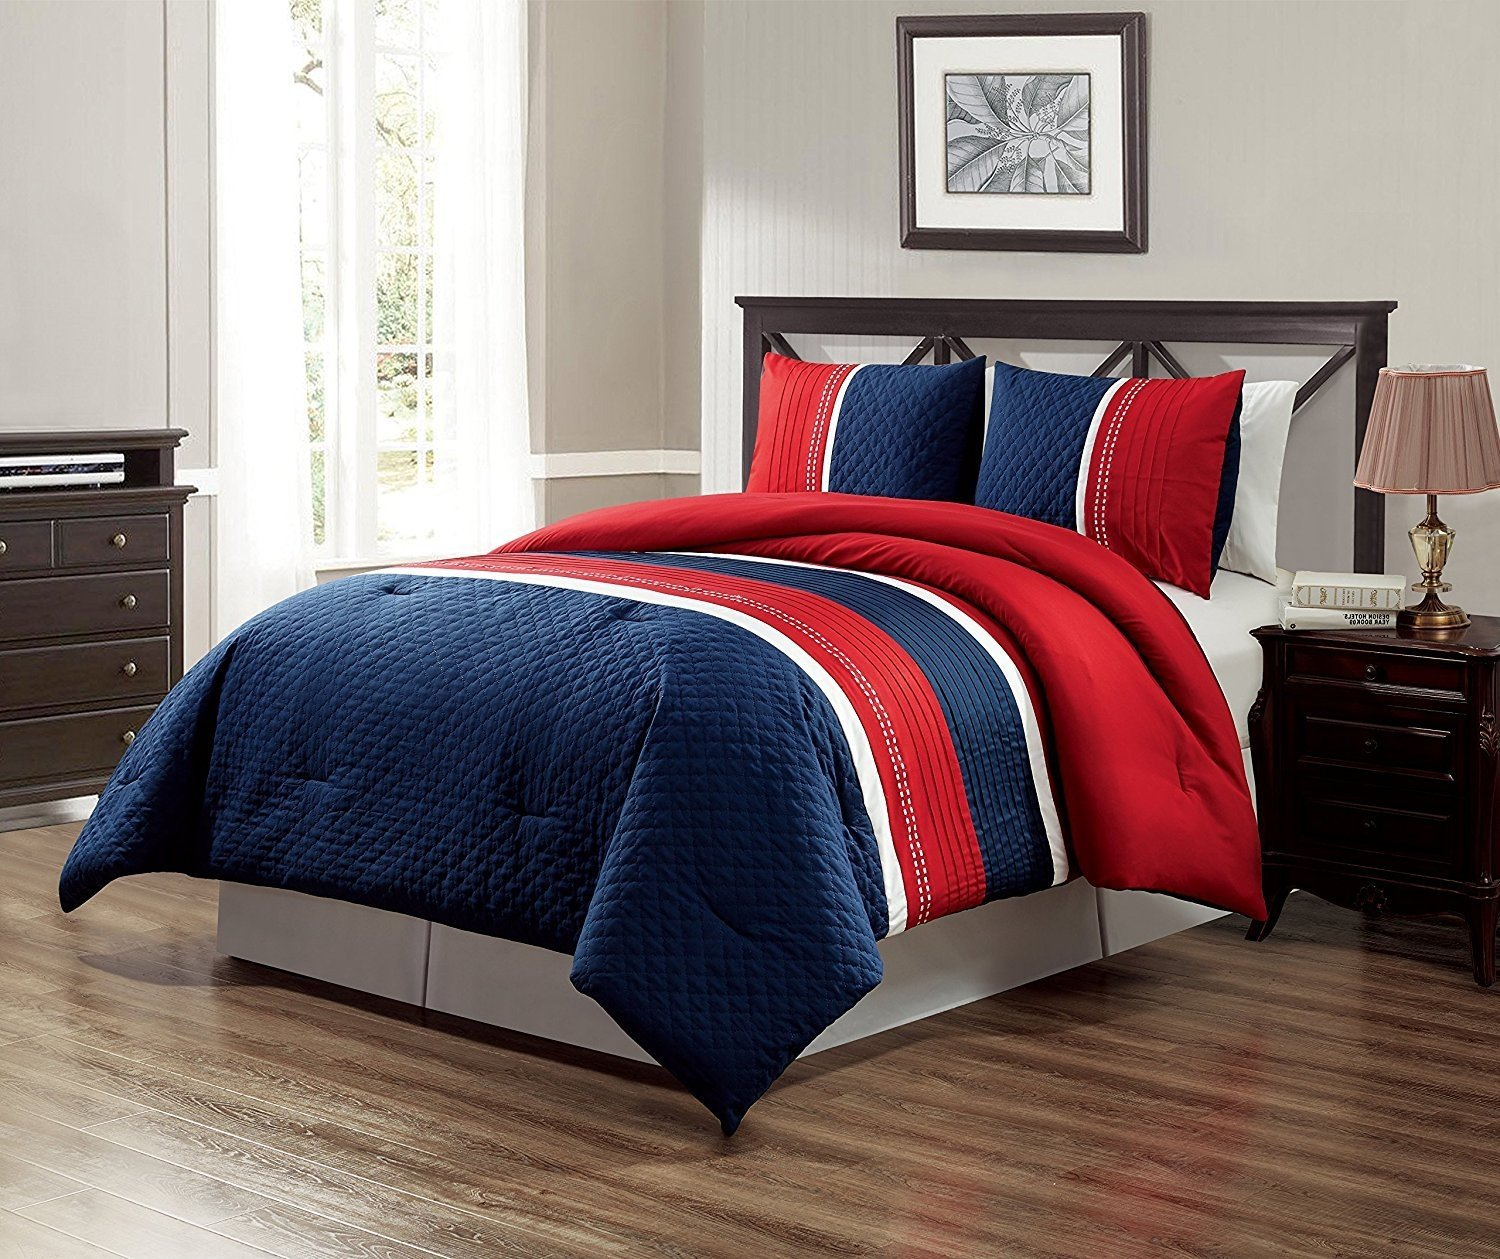 GrandLinen 3 Piece Navy Blue/Red/White Texas Lone Star Embroidery Western Bed in A Bag Down Alternative Comforter Set (Double) Full Size Bedding. Perfect for Any Bed Room or Guest Room